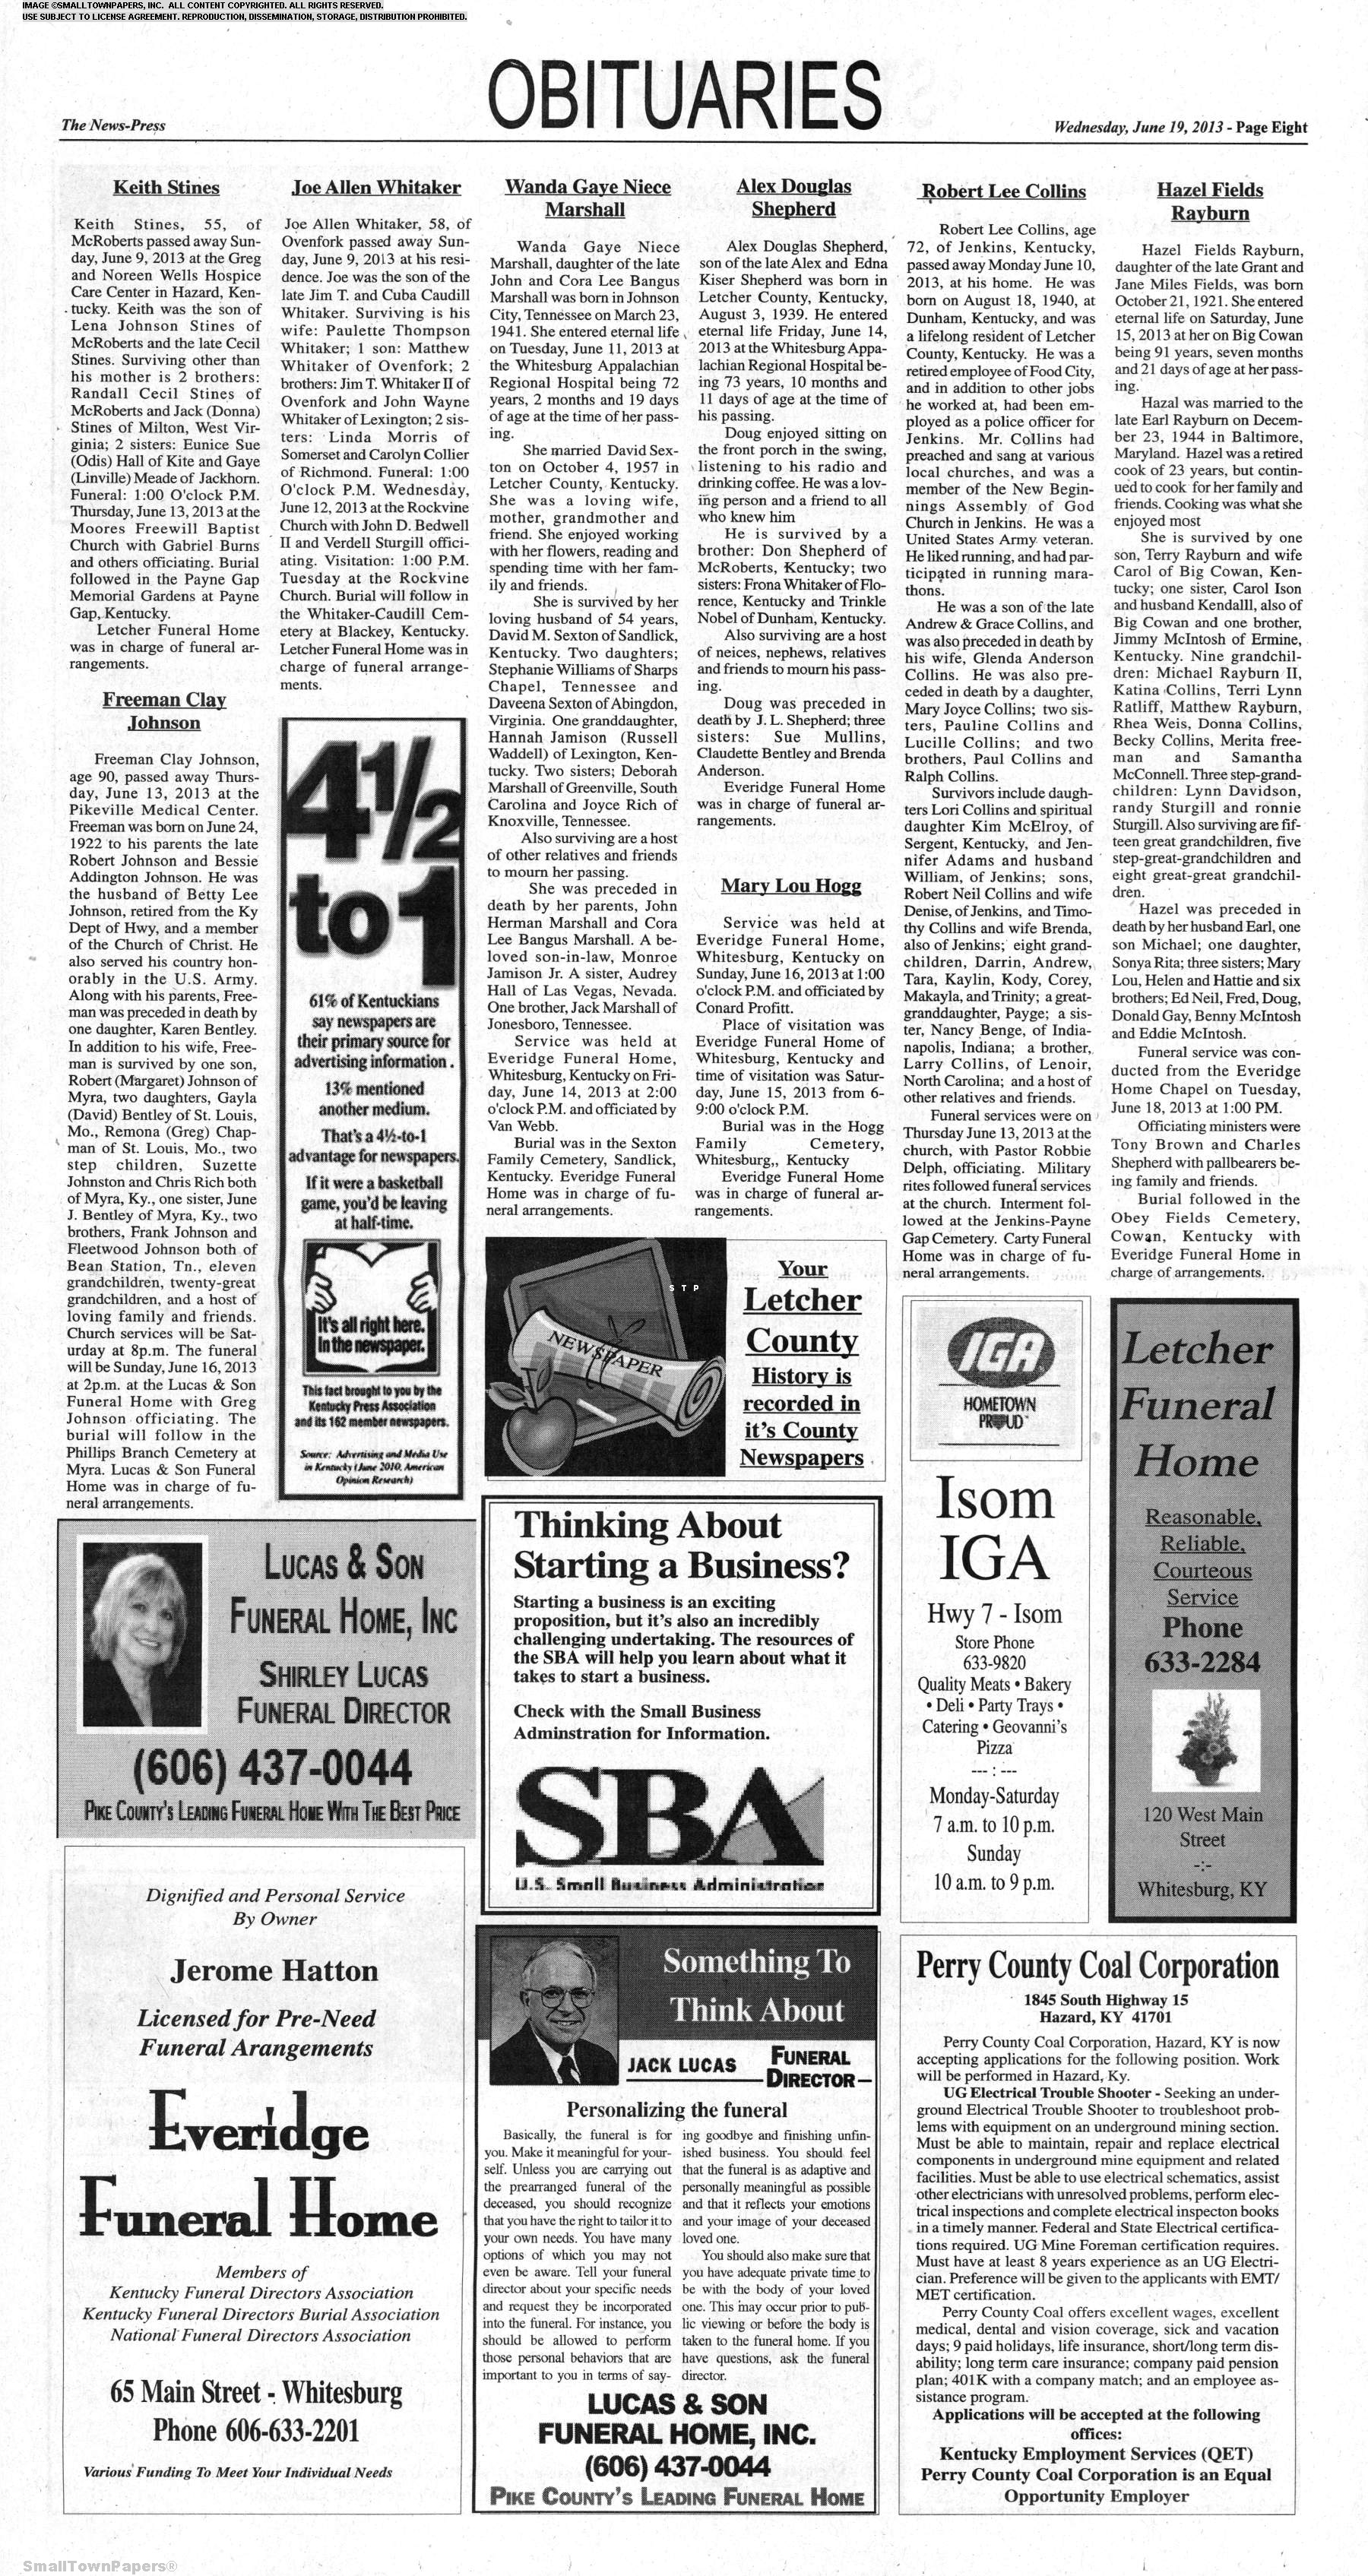 Letcher County Community News-Press June 19, 2013: Page 8